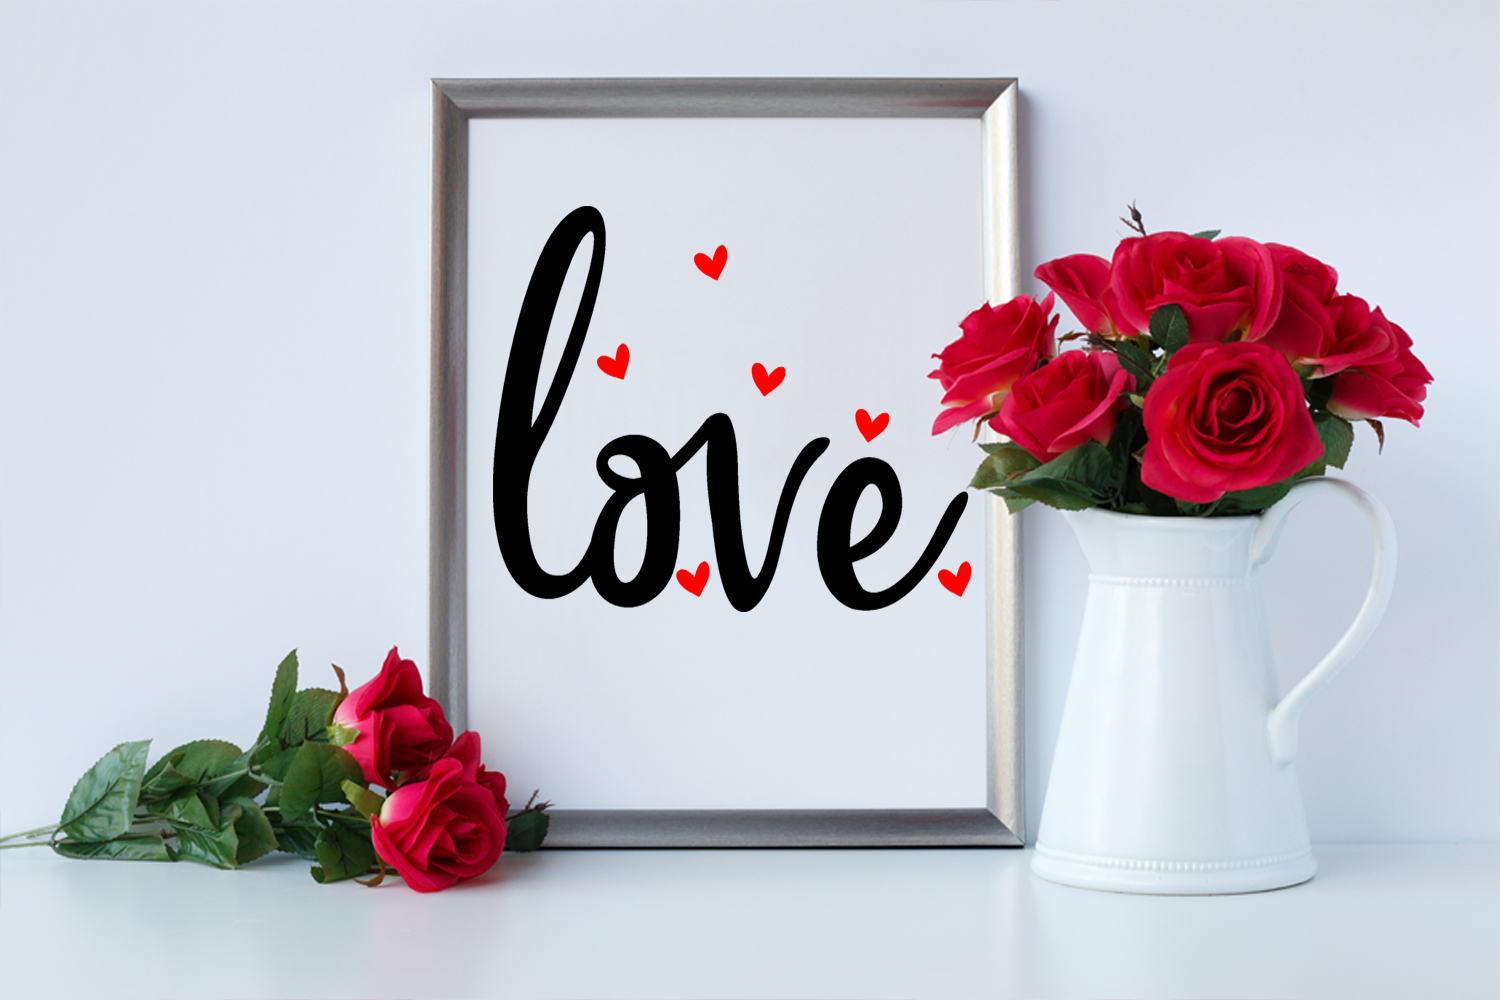 Cute Valentines Overlays-Valentines Day Overlay Collection example image 3